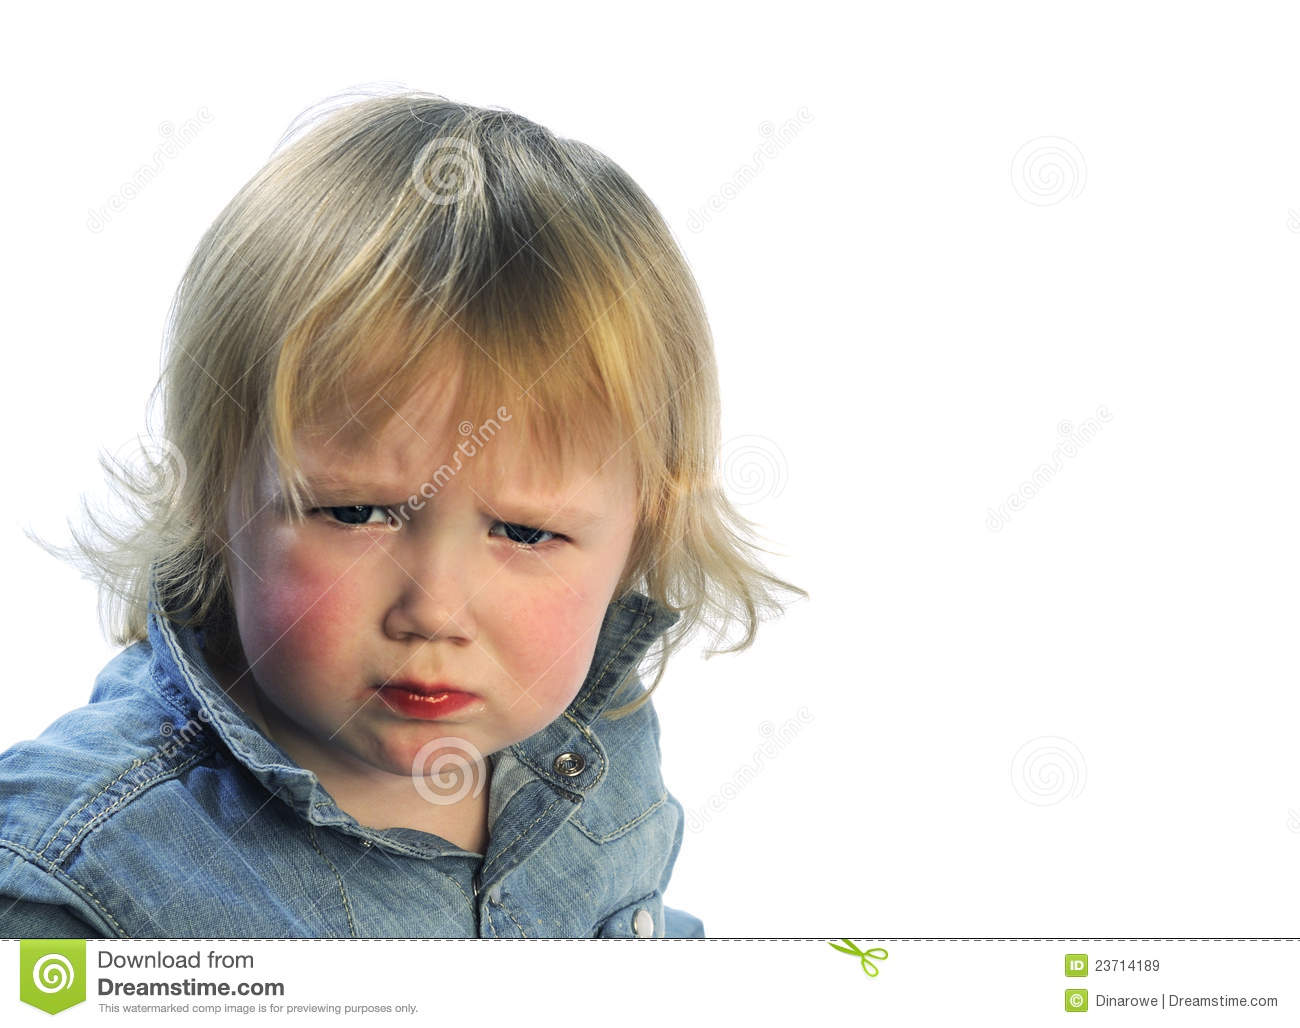 Portrait of unsatisfied toddler on white background.